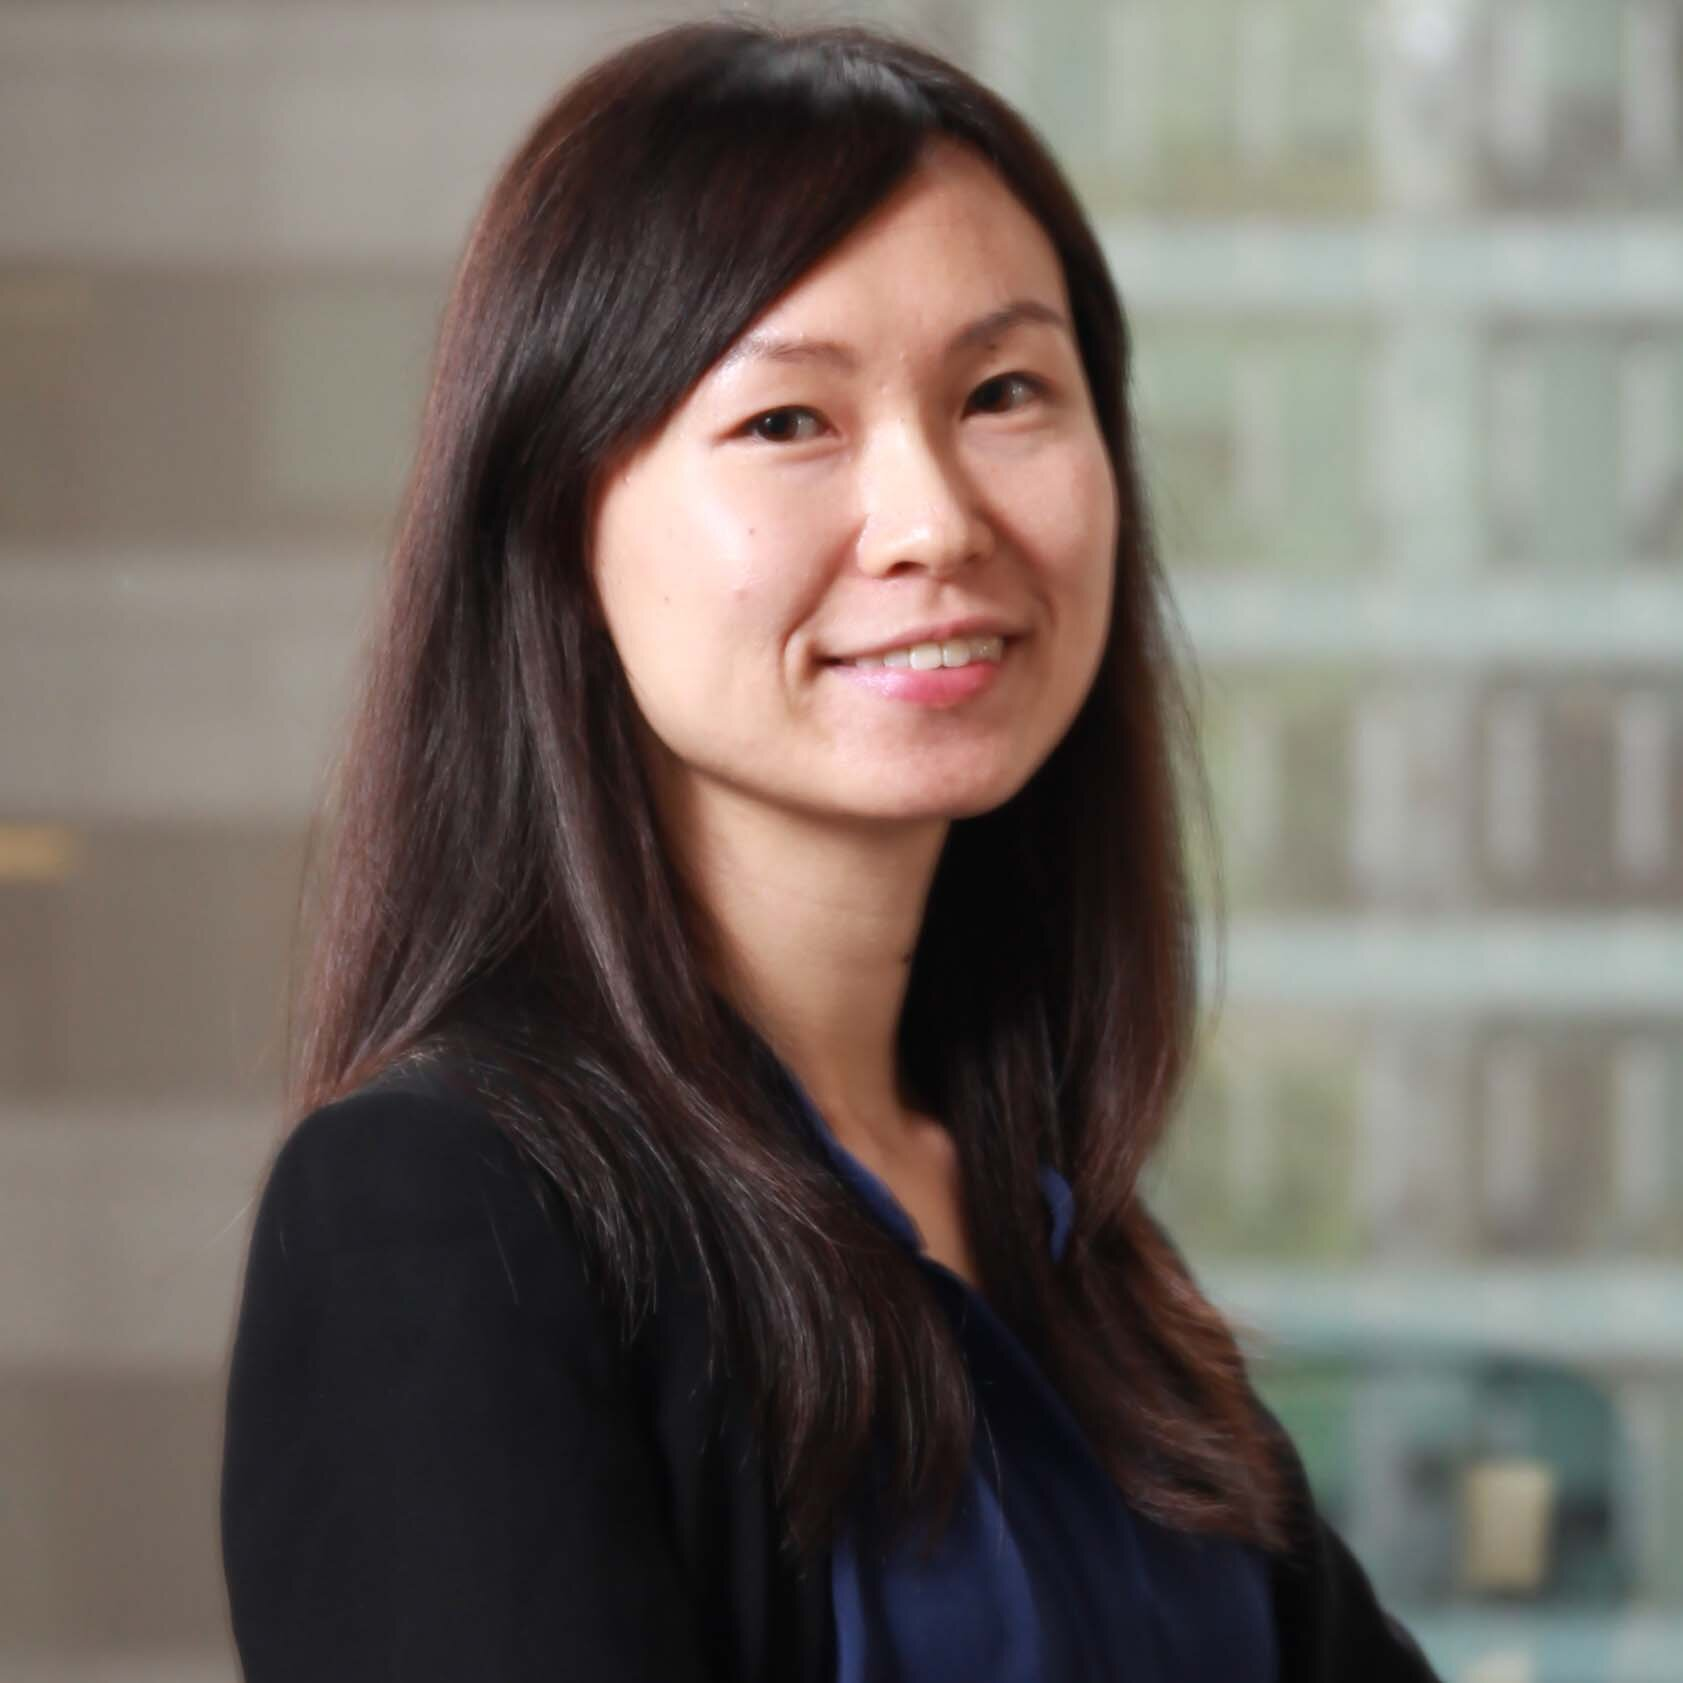 Tiffany cheung 1 - Our Lawyers